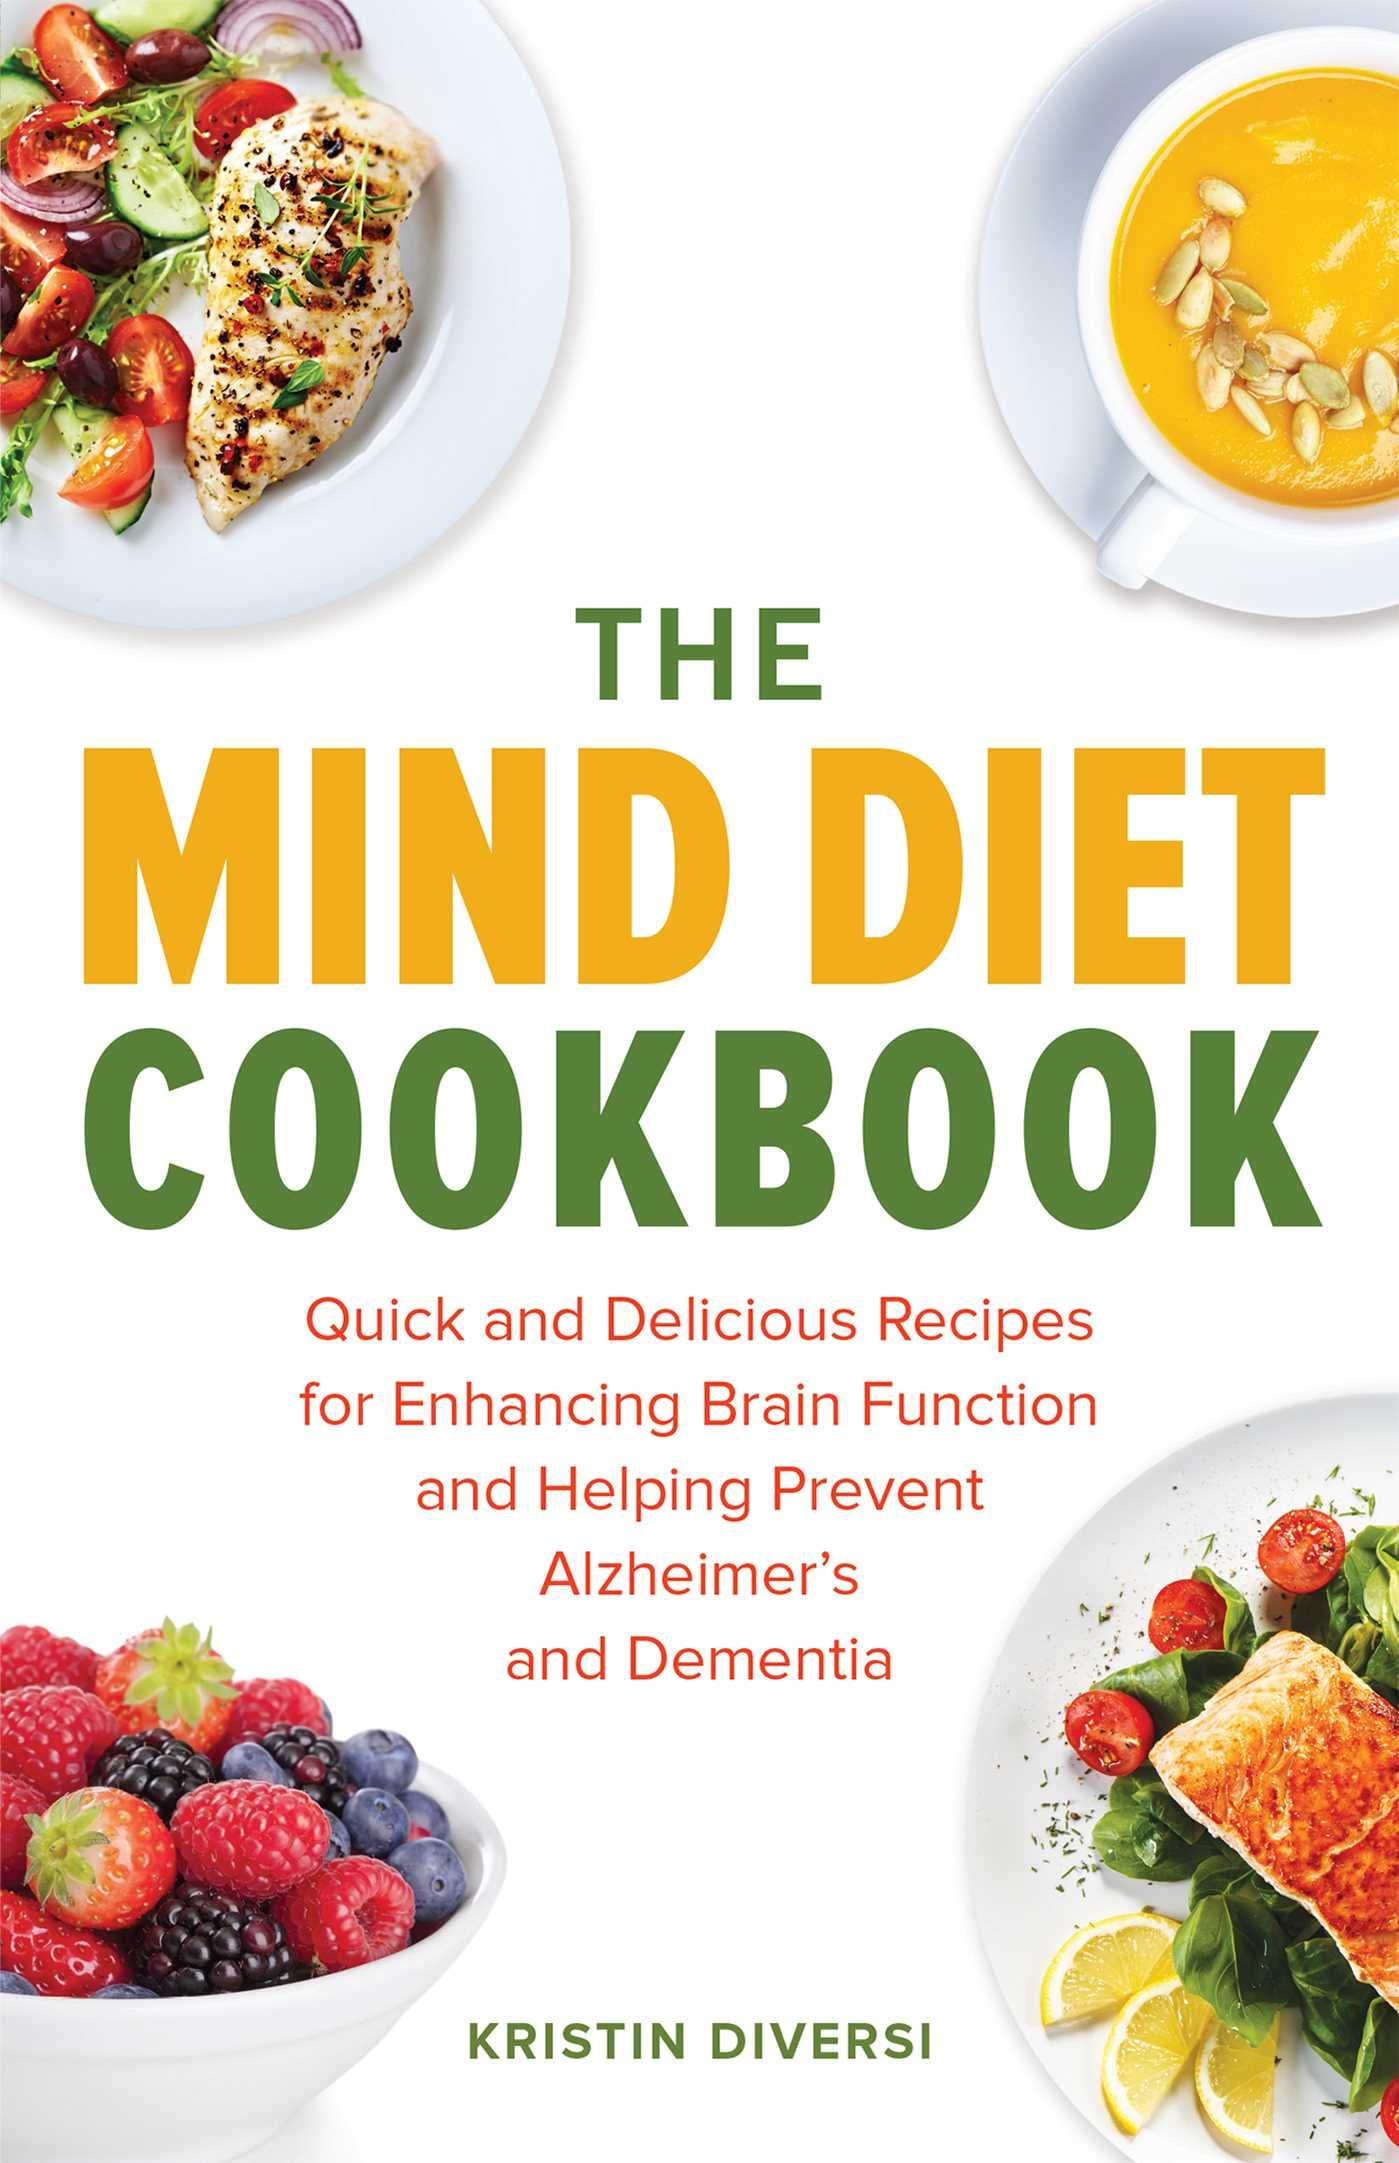 recipes to use in mind diet